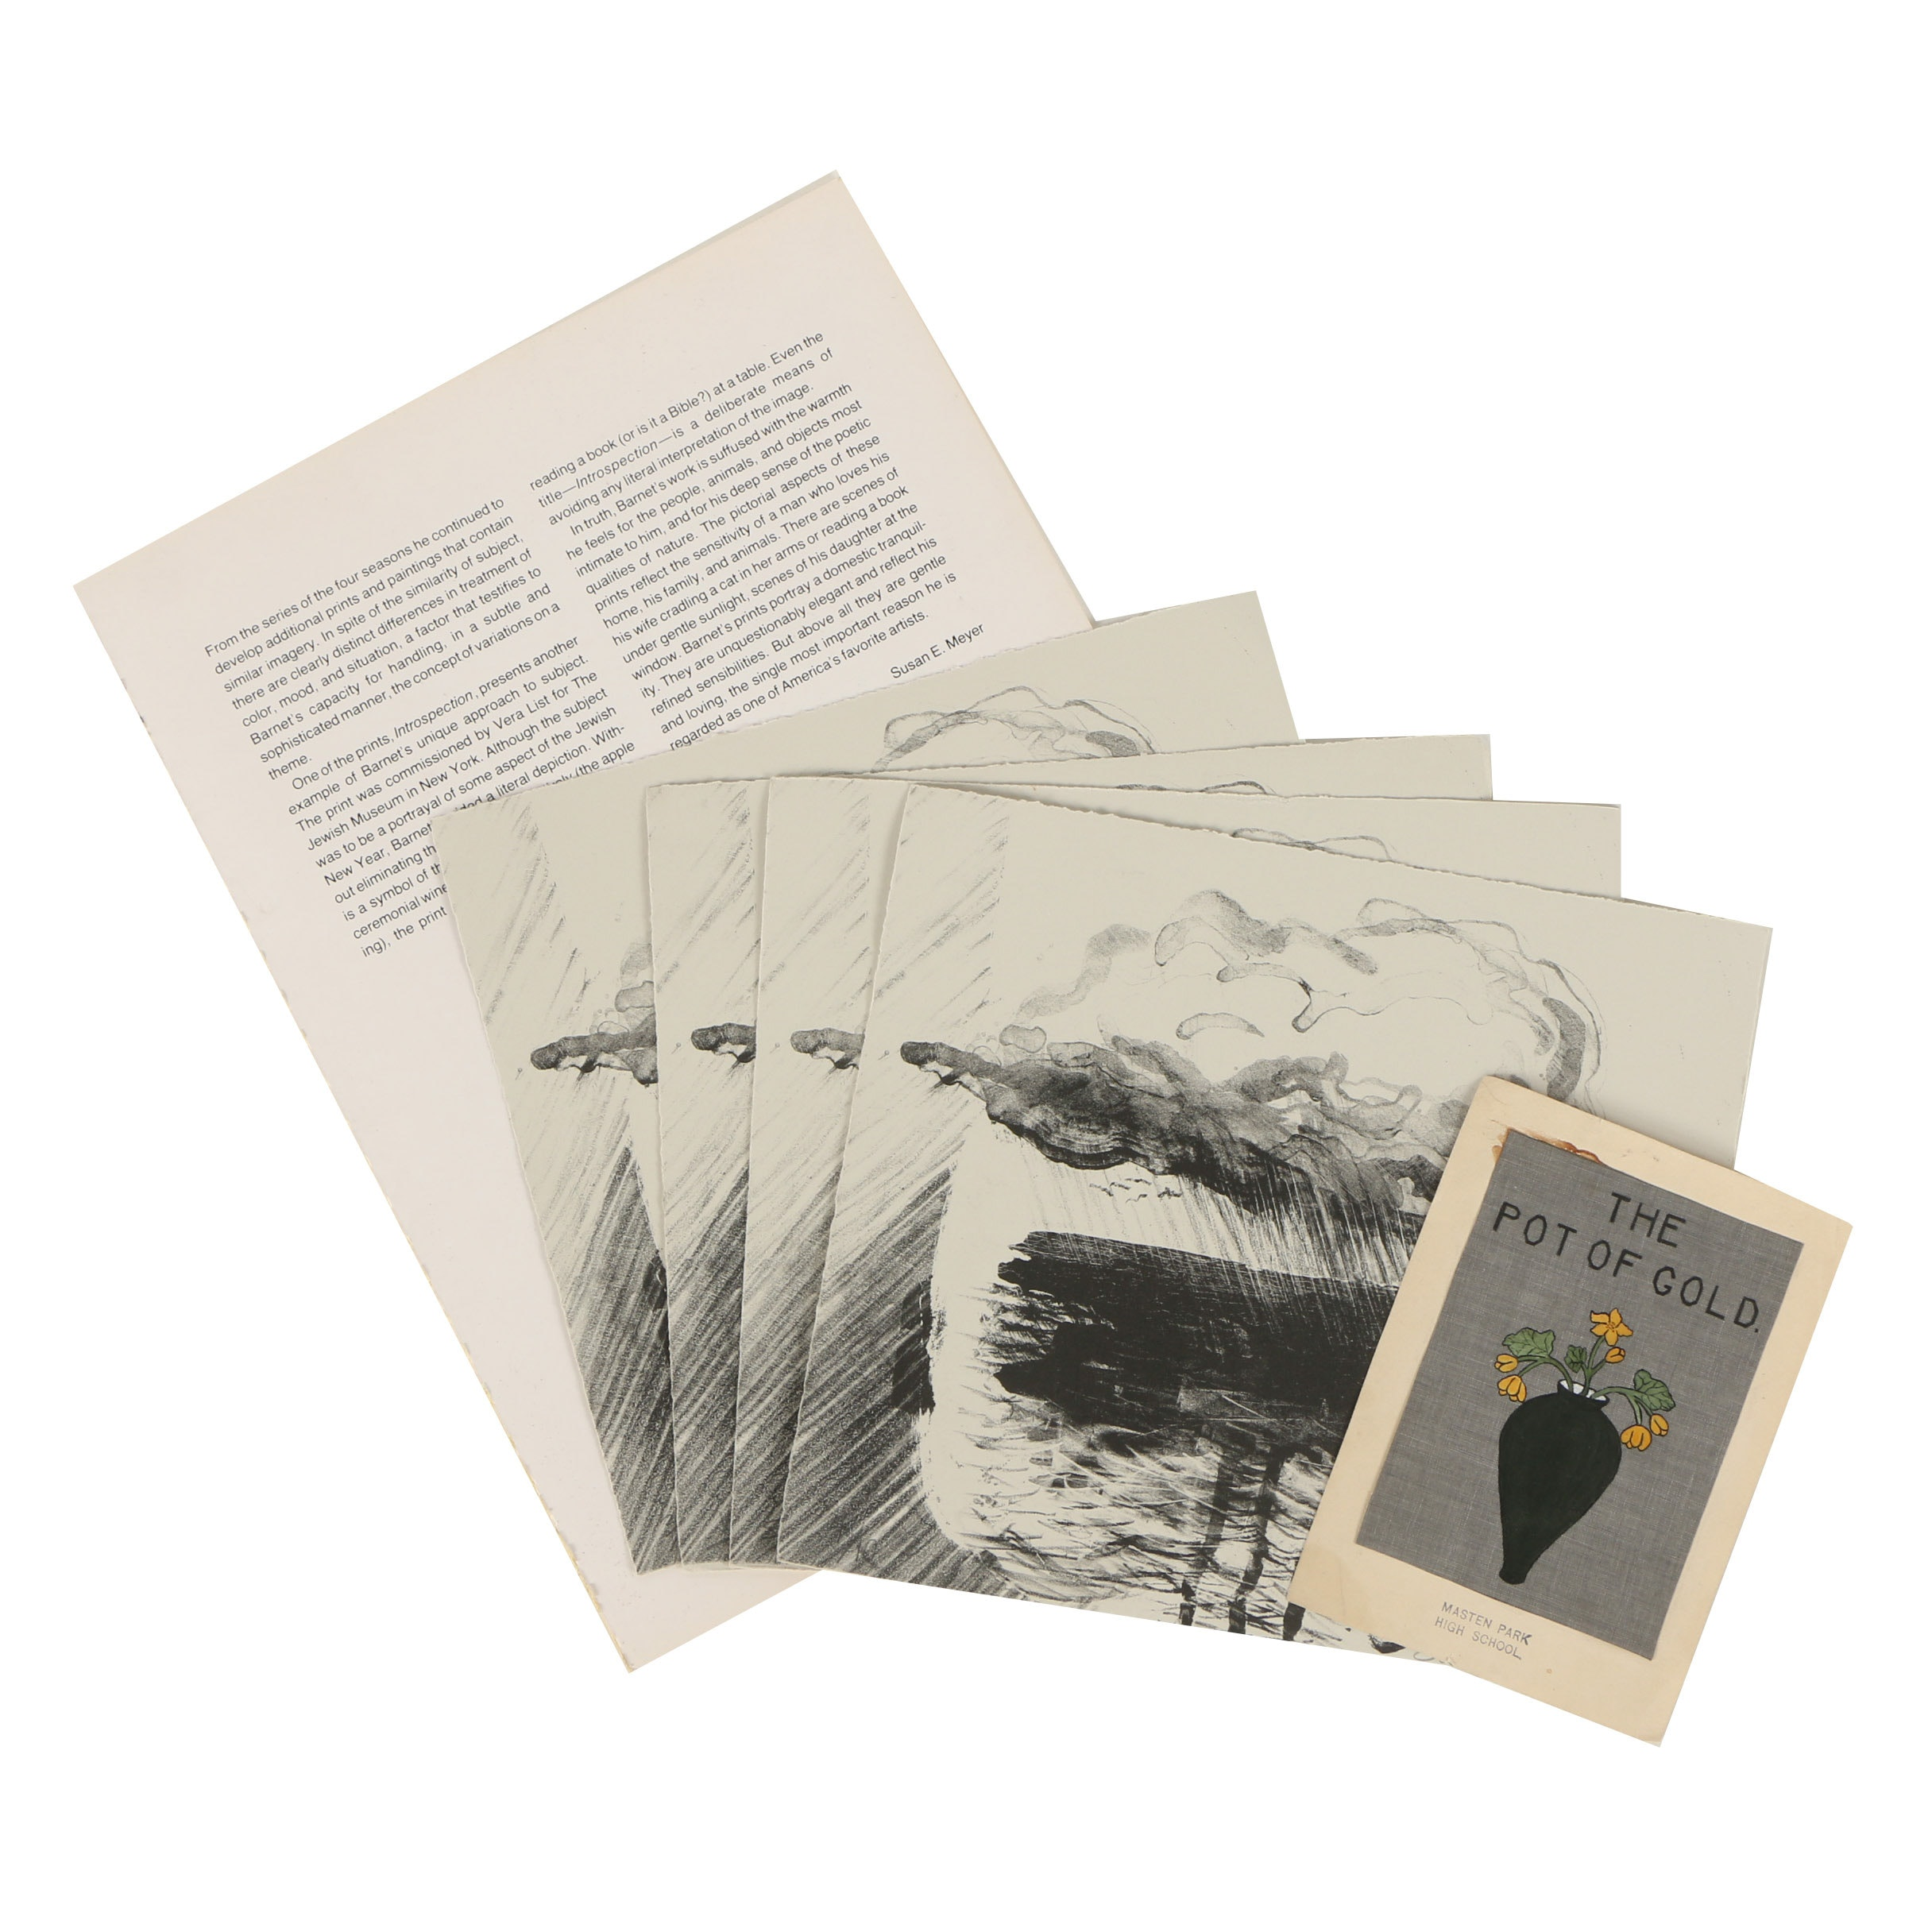 Eric L. Dates Offset Lithographs and Will Barnet Catalog